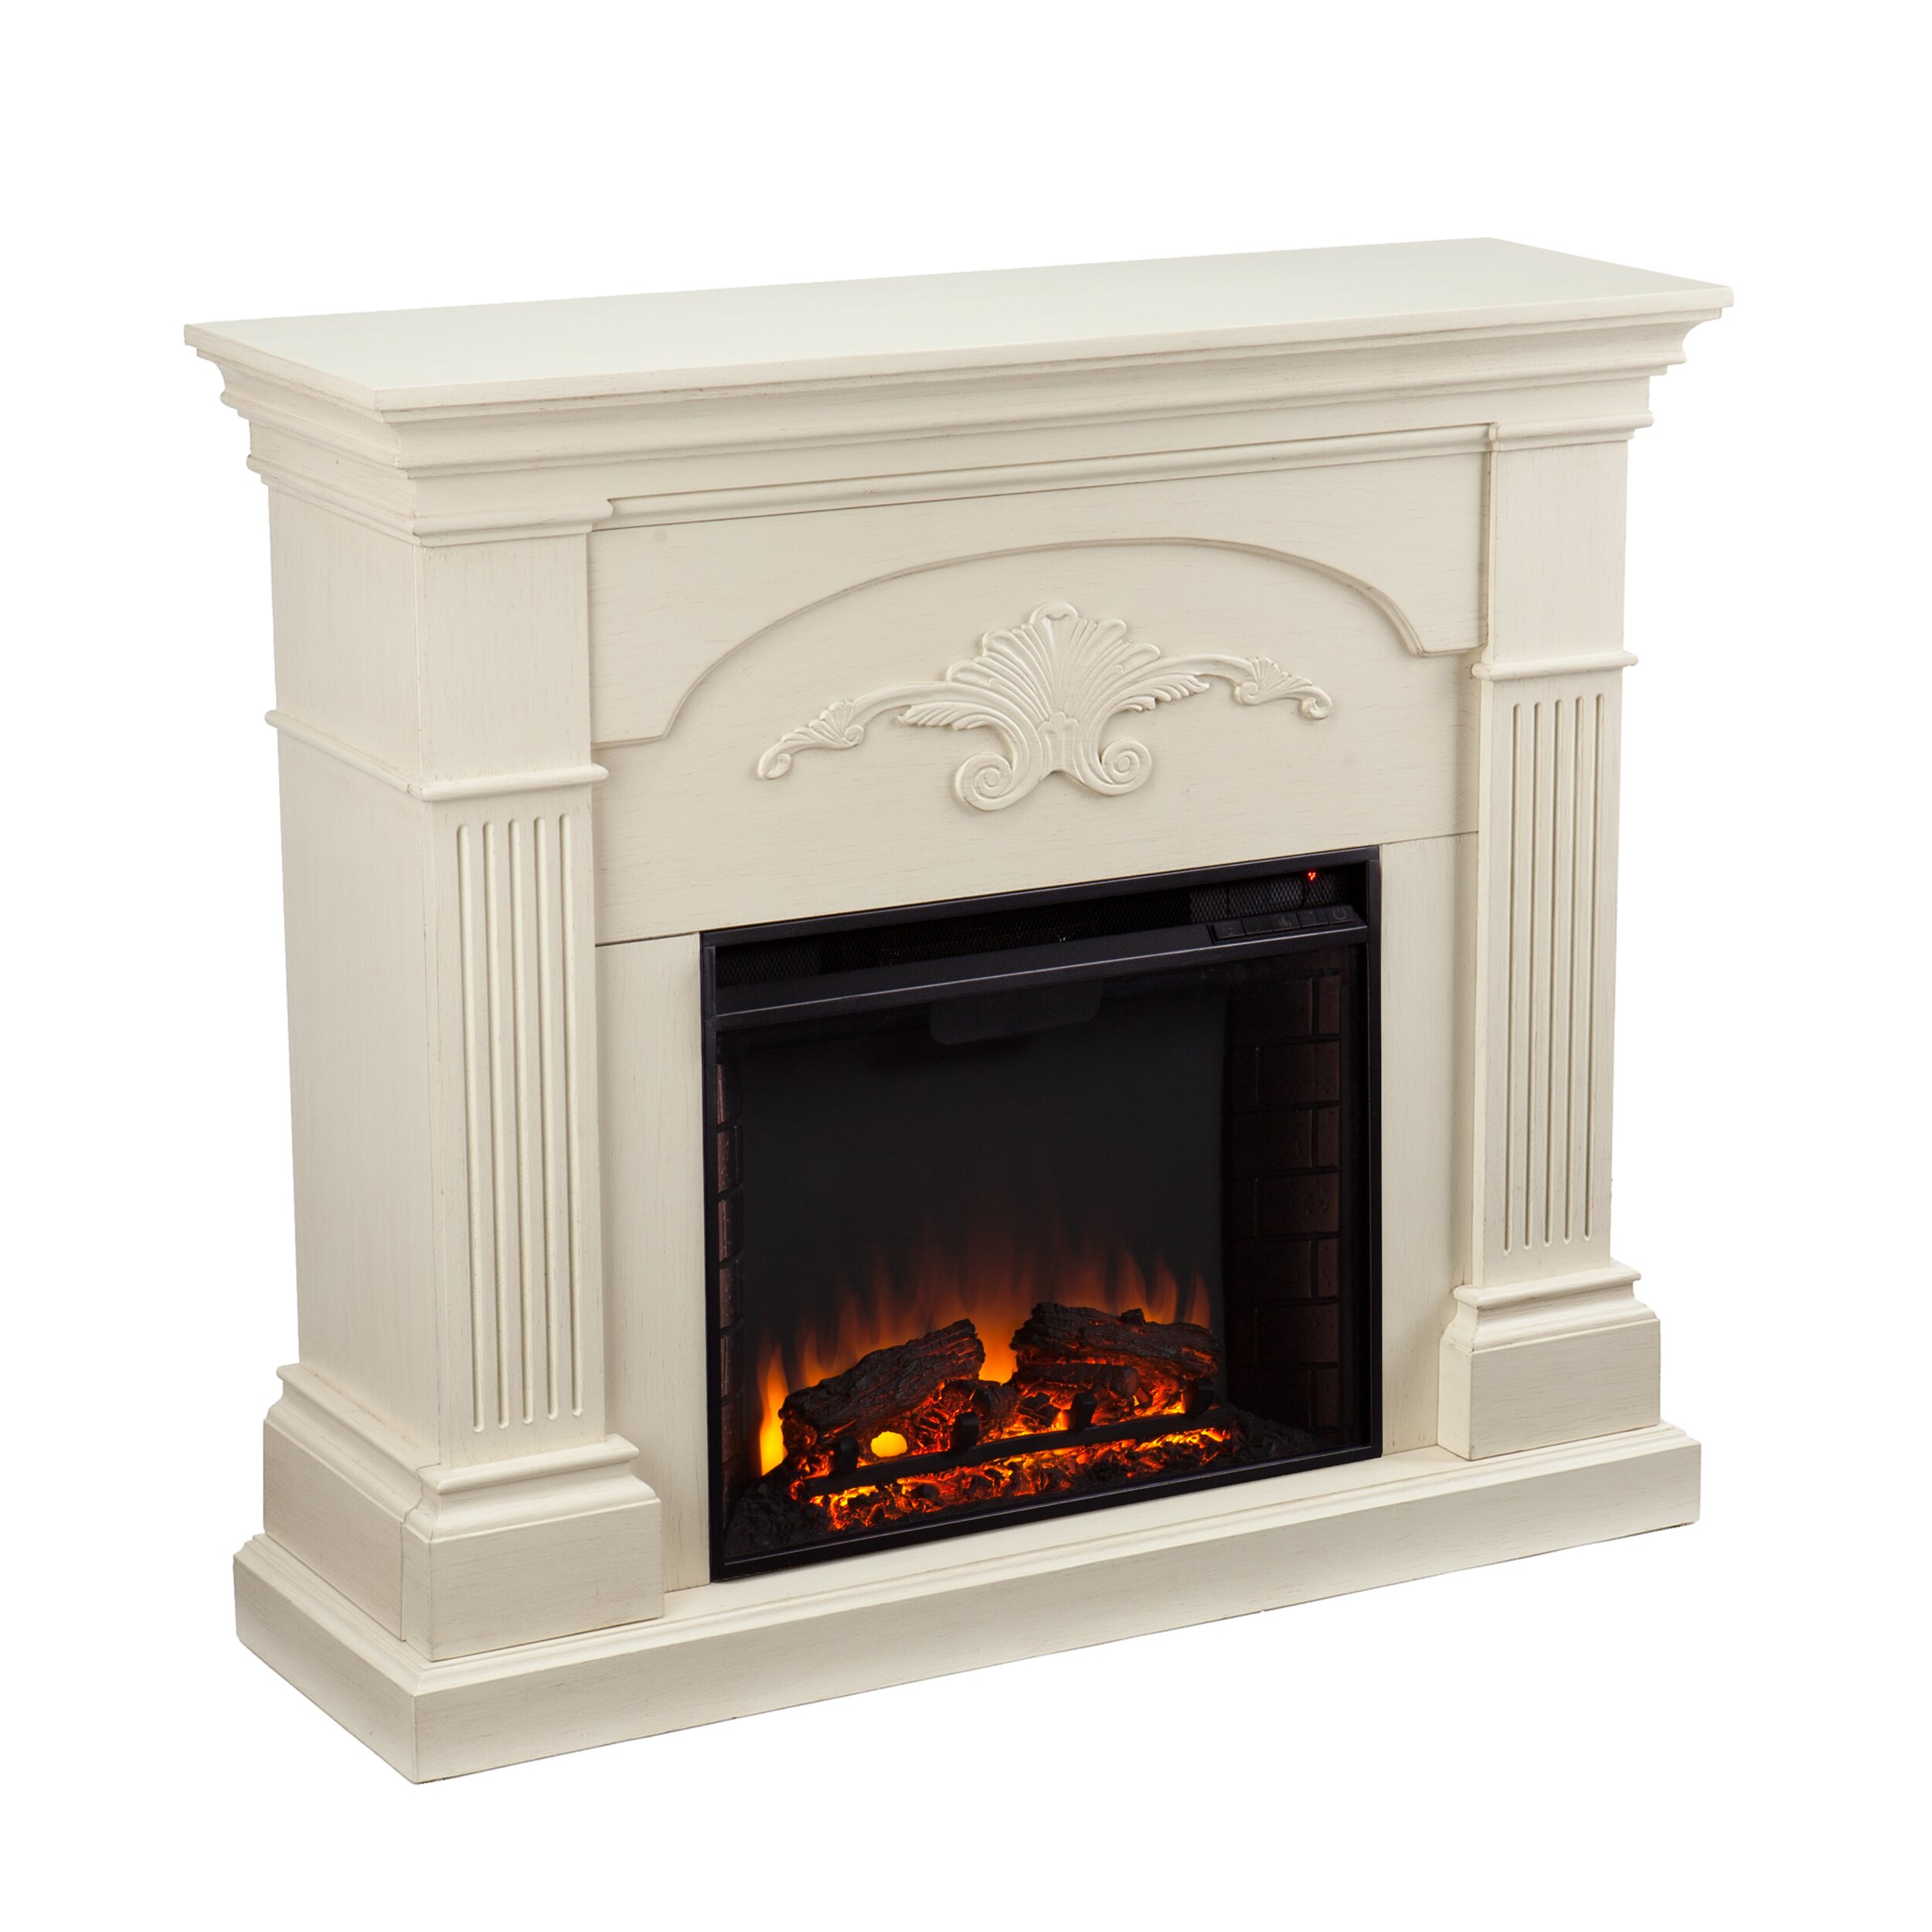 Bedroom electric fireplace - Wendy Electric Fireplace